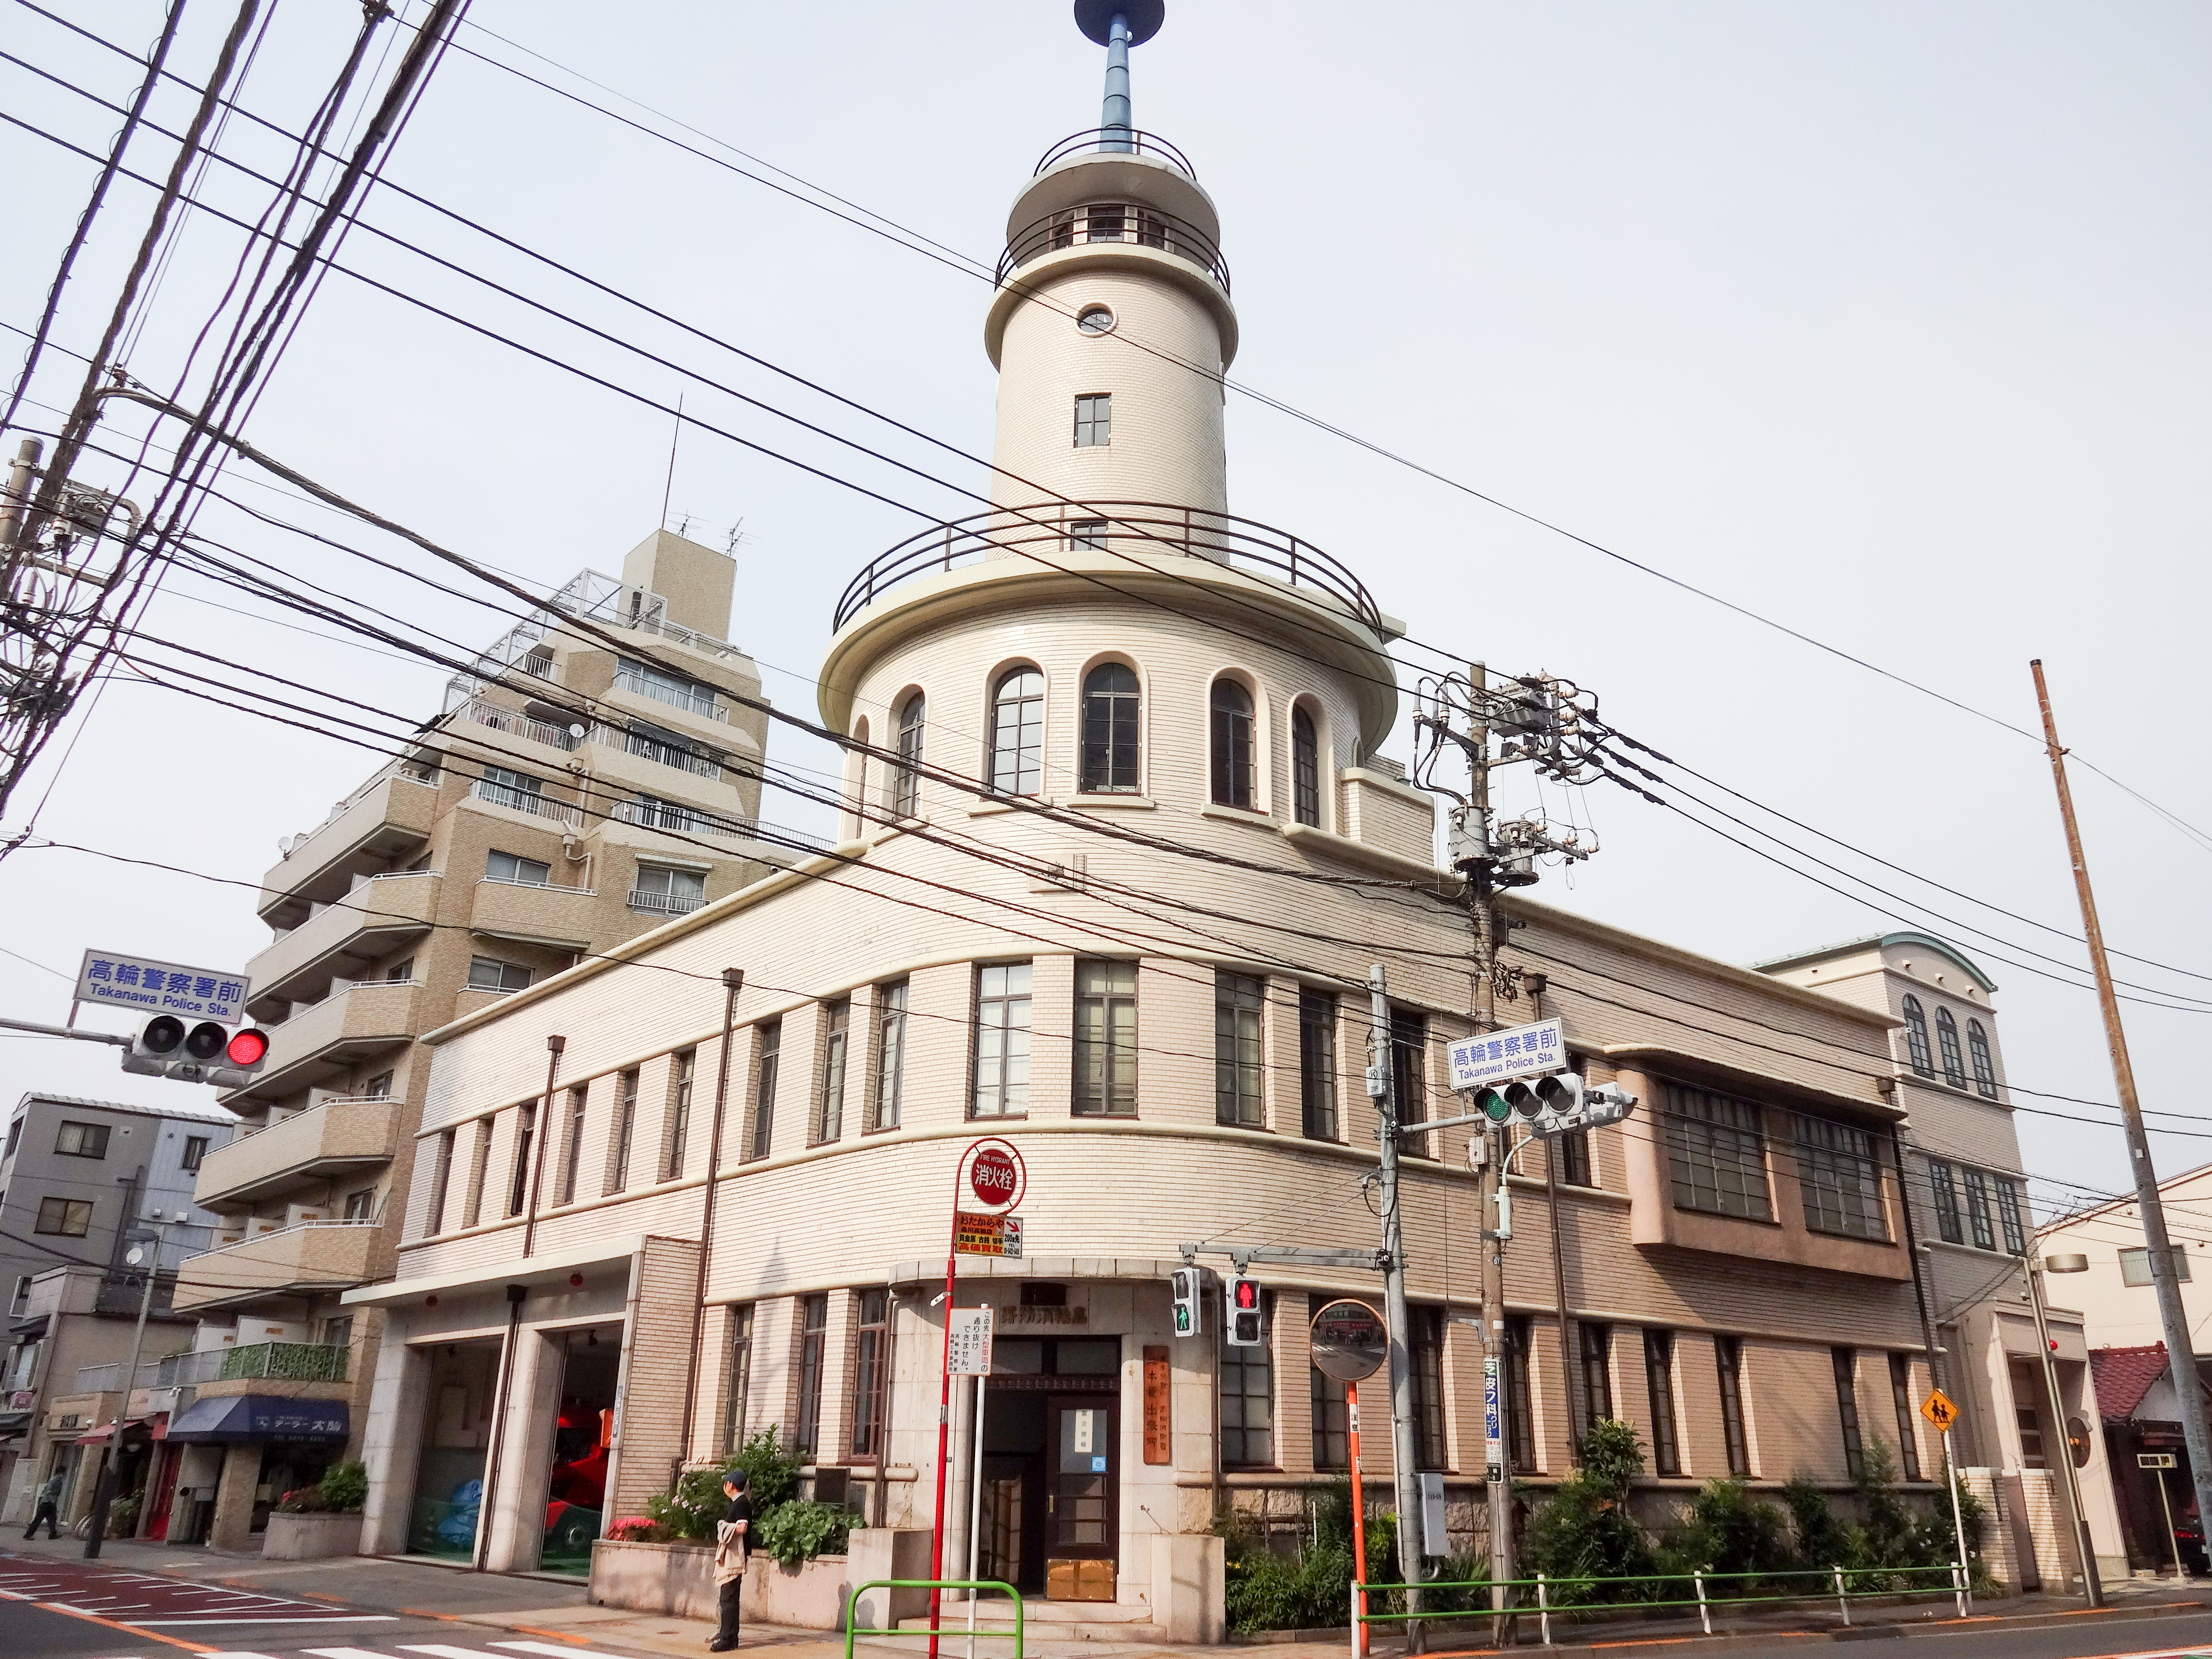 front_view_of_takanawa_fire_station_nihon-enoki_branch_office